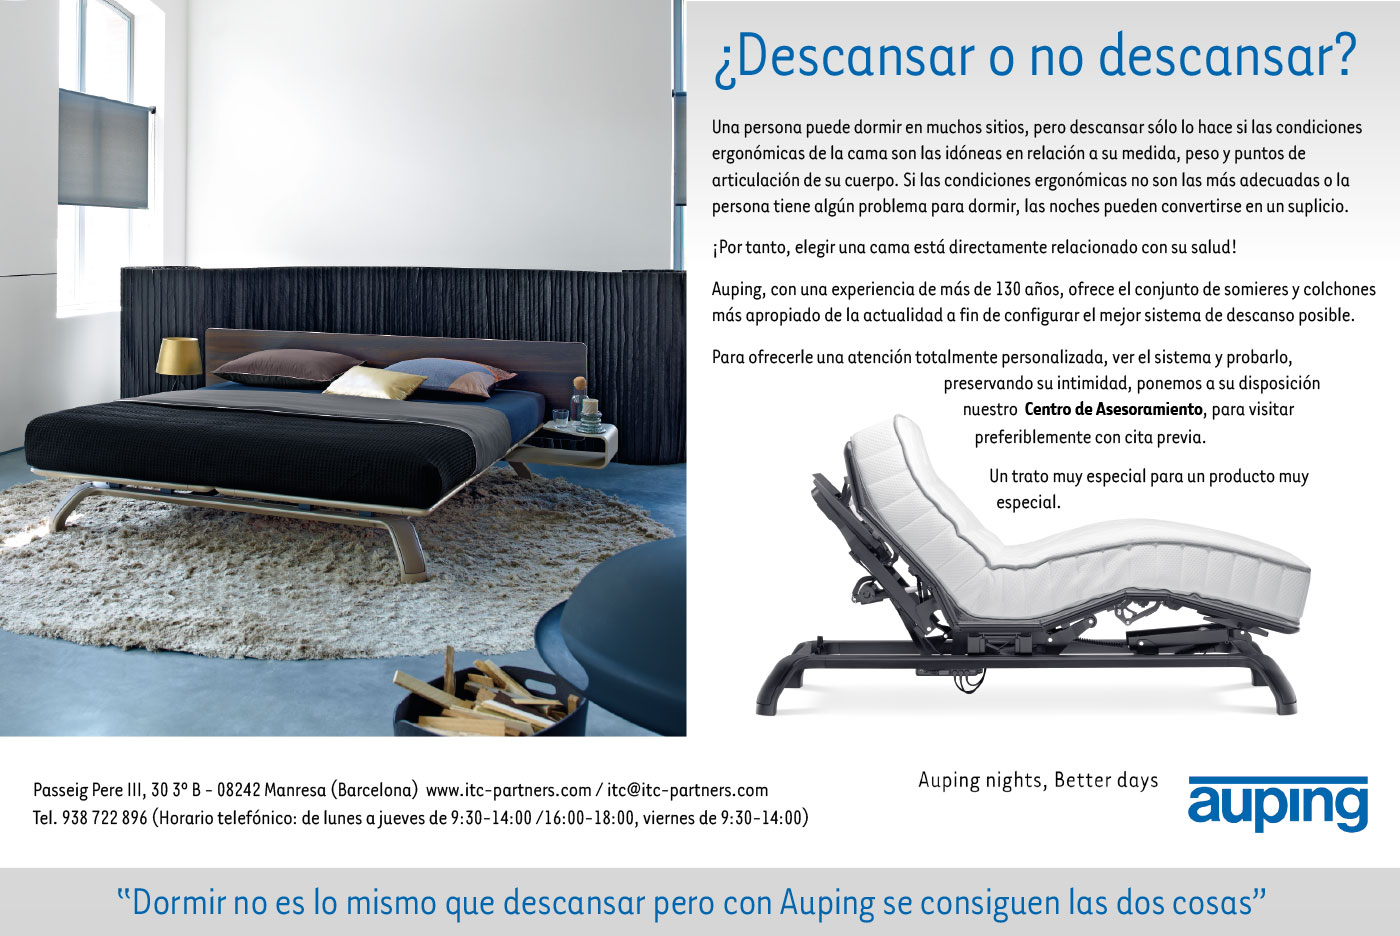 Auping - ¿Descansar o no descansar?